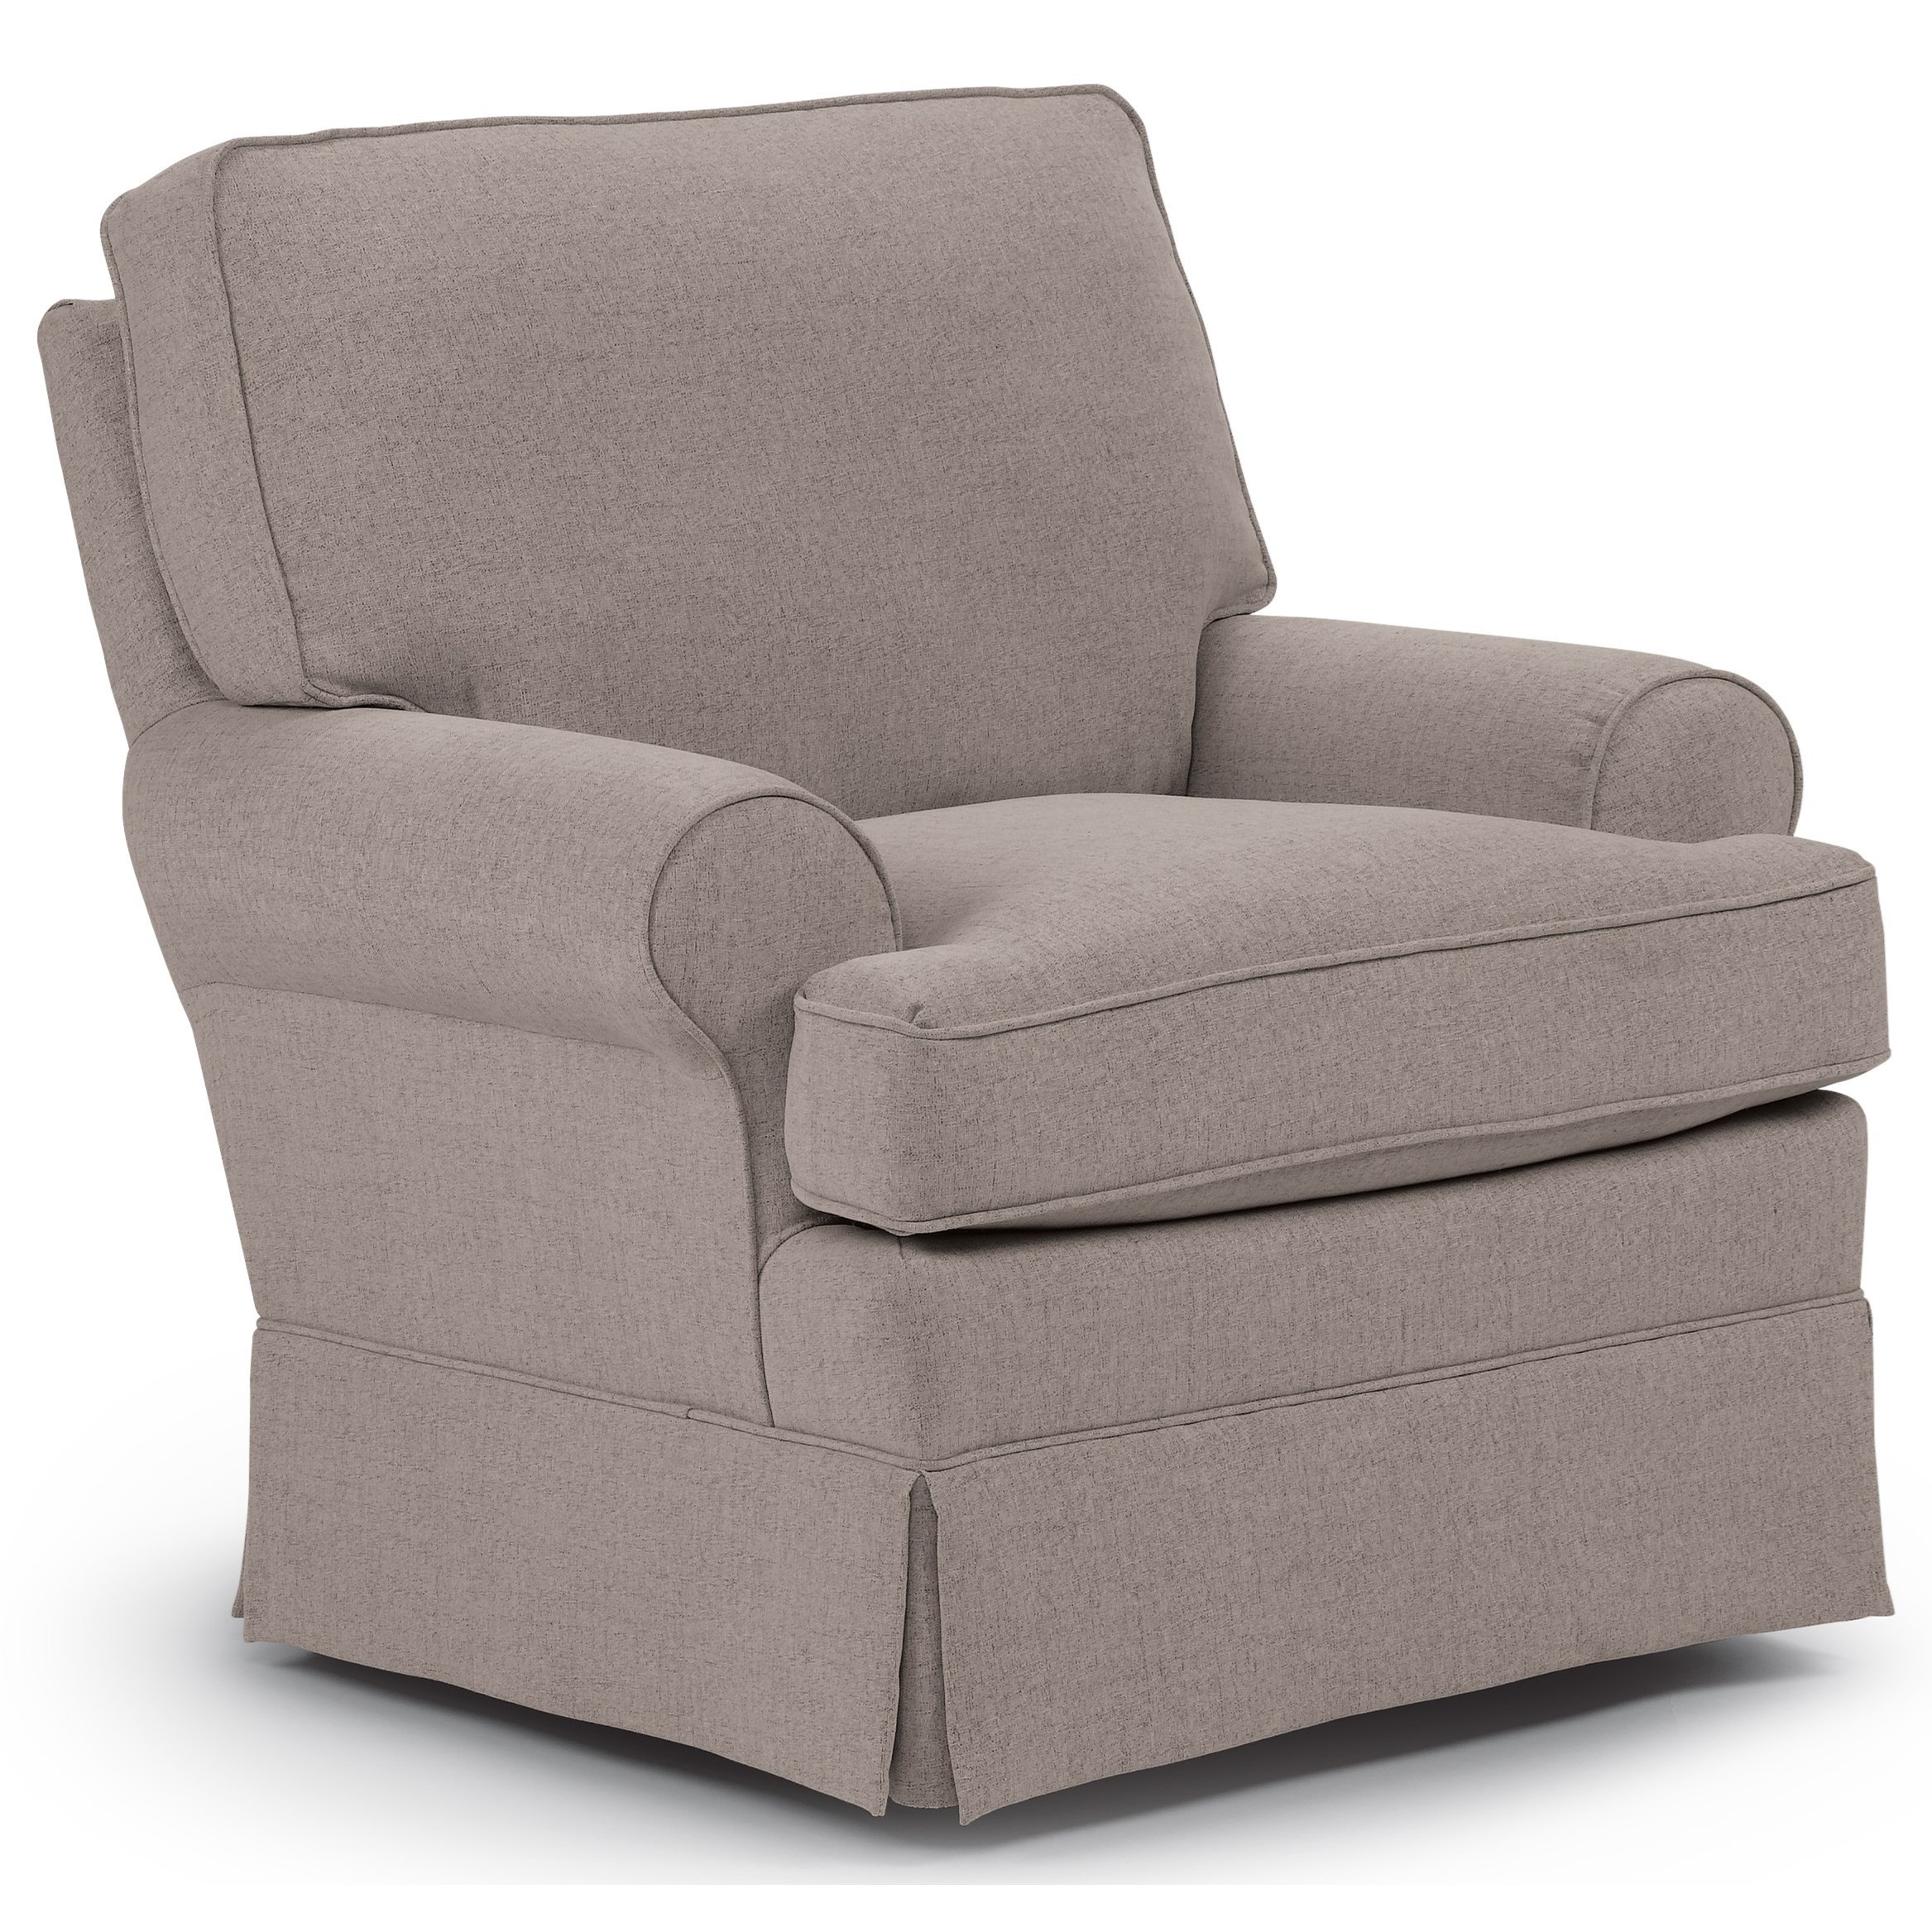 Swivel Glide Chairs Swivel Glider Chair without Welt Cord Trim by Best Home Furnishings at Baer's Furniture